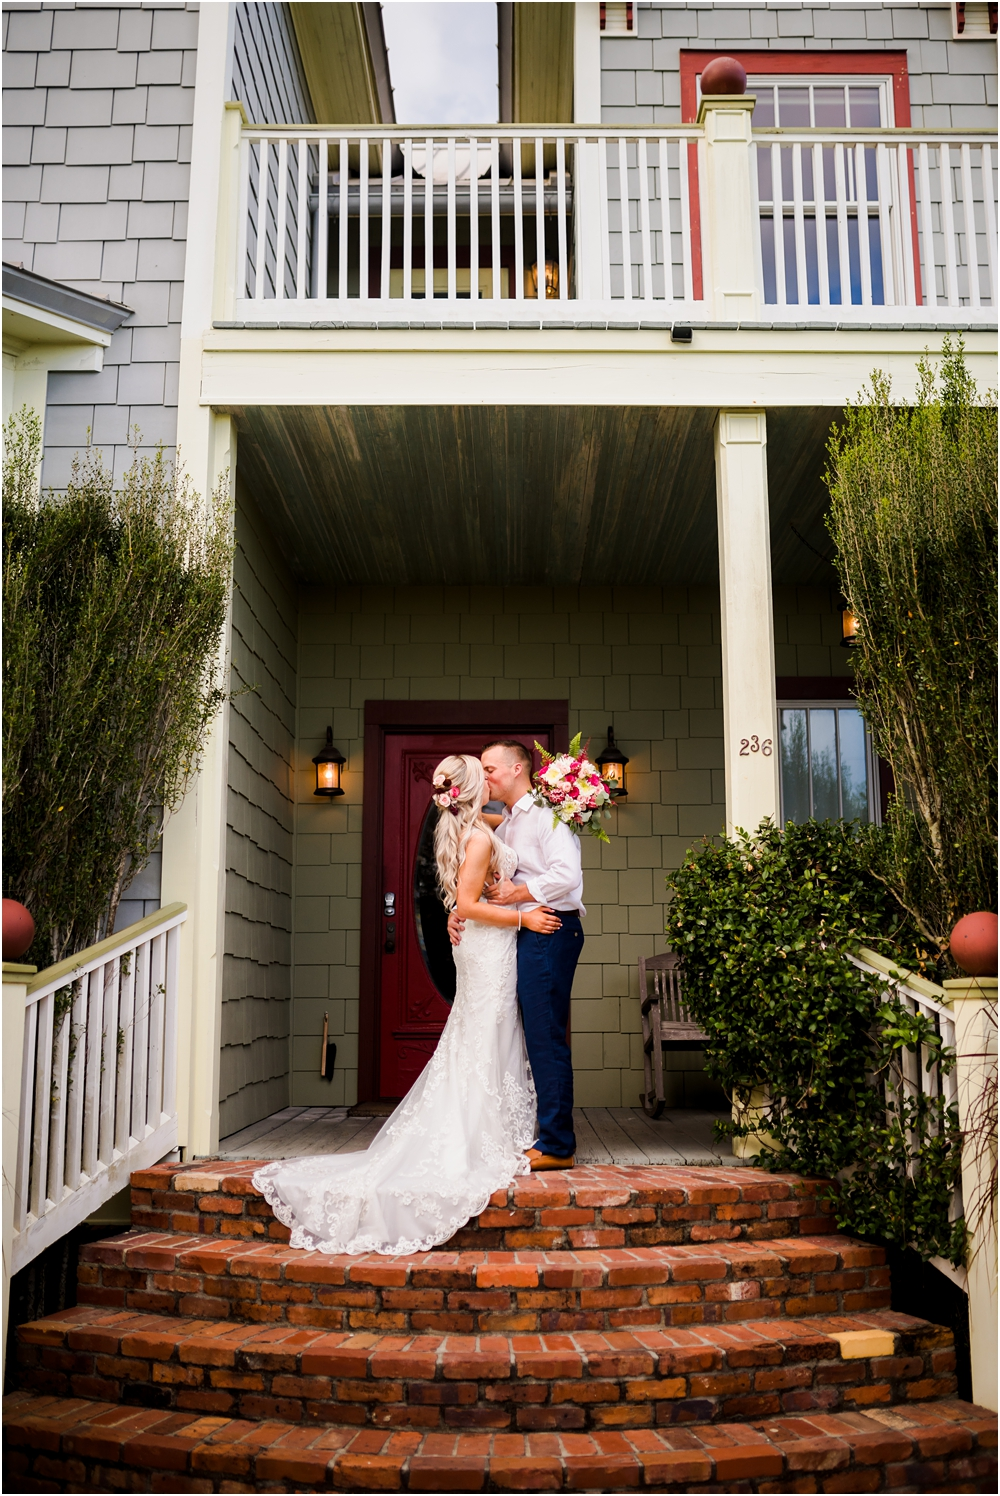 mcglothlin-wedding-kiersten-stevenson-photography-30a-panama-city-beach-dothan-tallahassee-(55-of-145).jpg